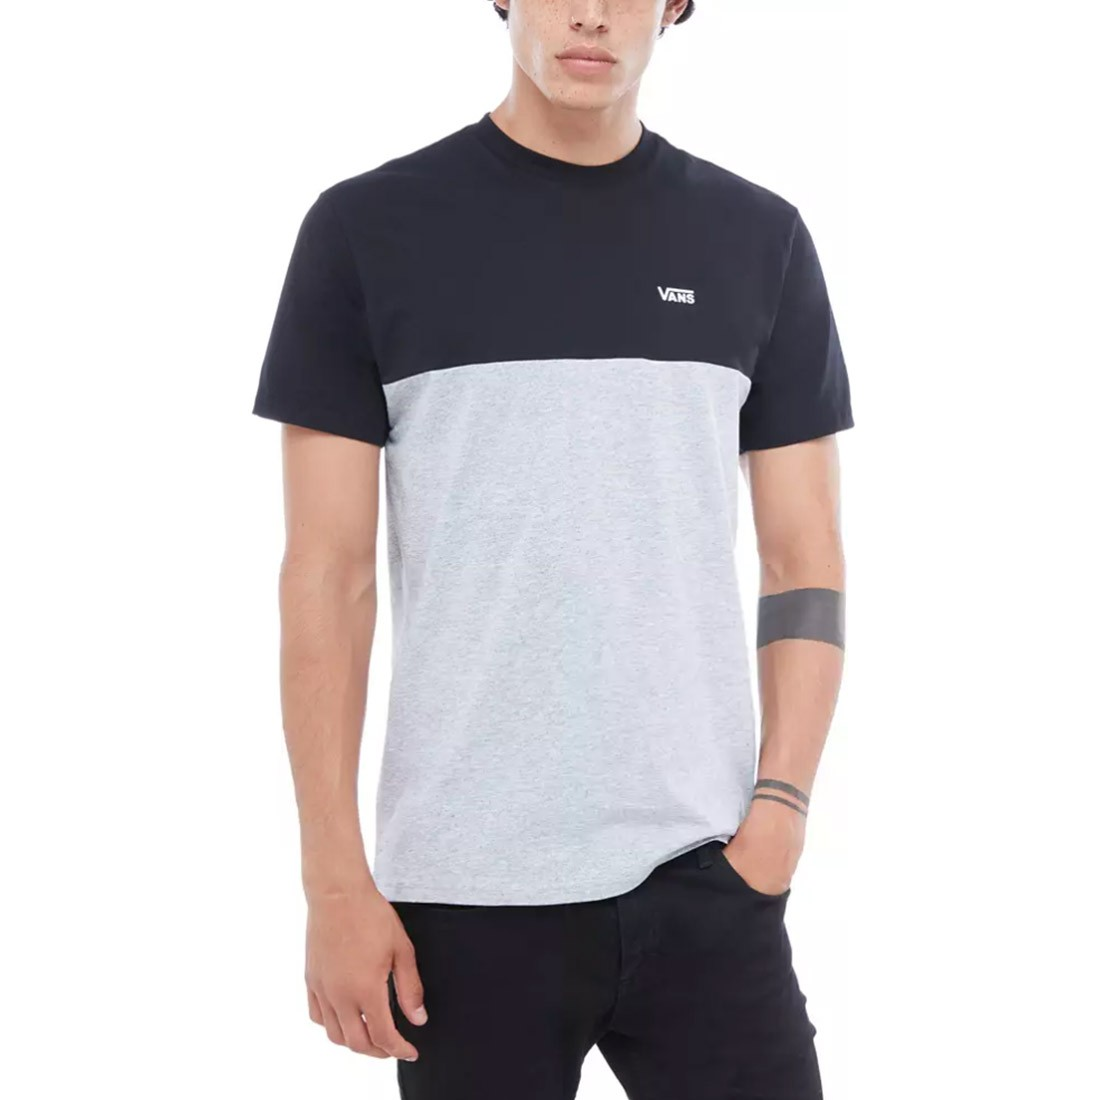 T-SHIRT VANS COLORBLOCK black grey